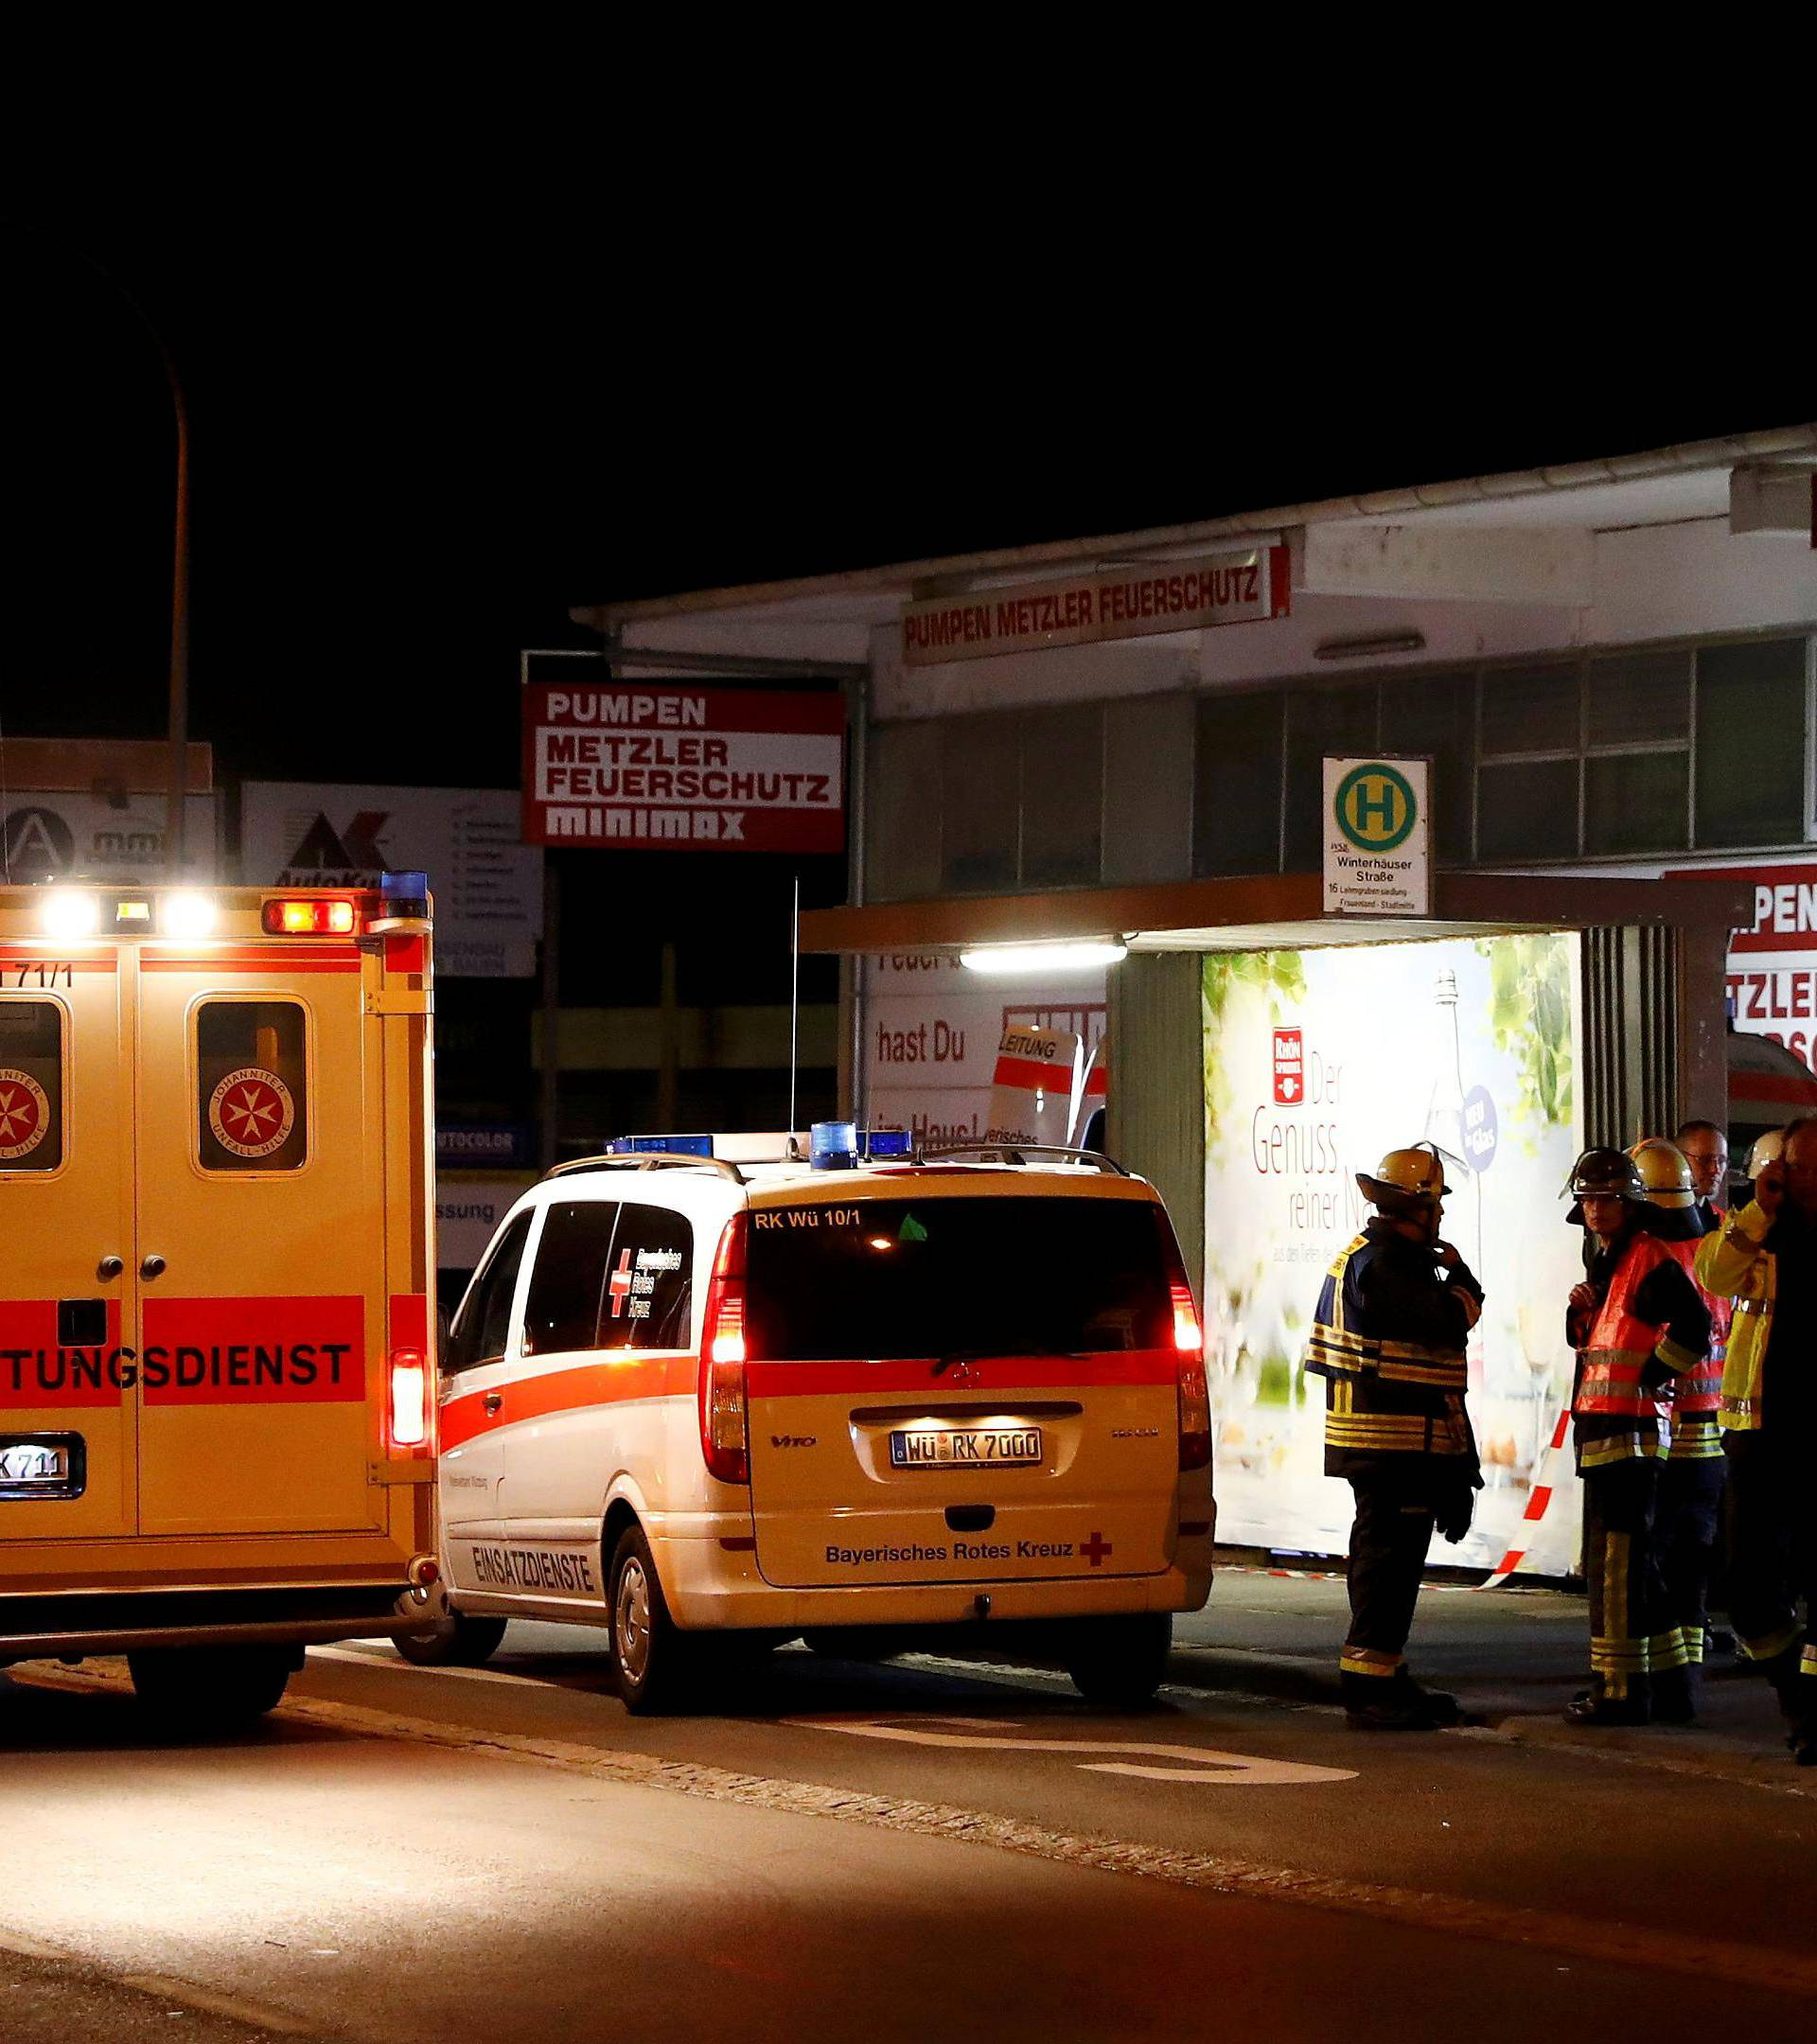 German emergency services workers work in the area where a man with an axe attacked passengers on a train near Wuerzburg